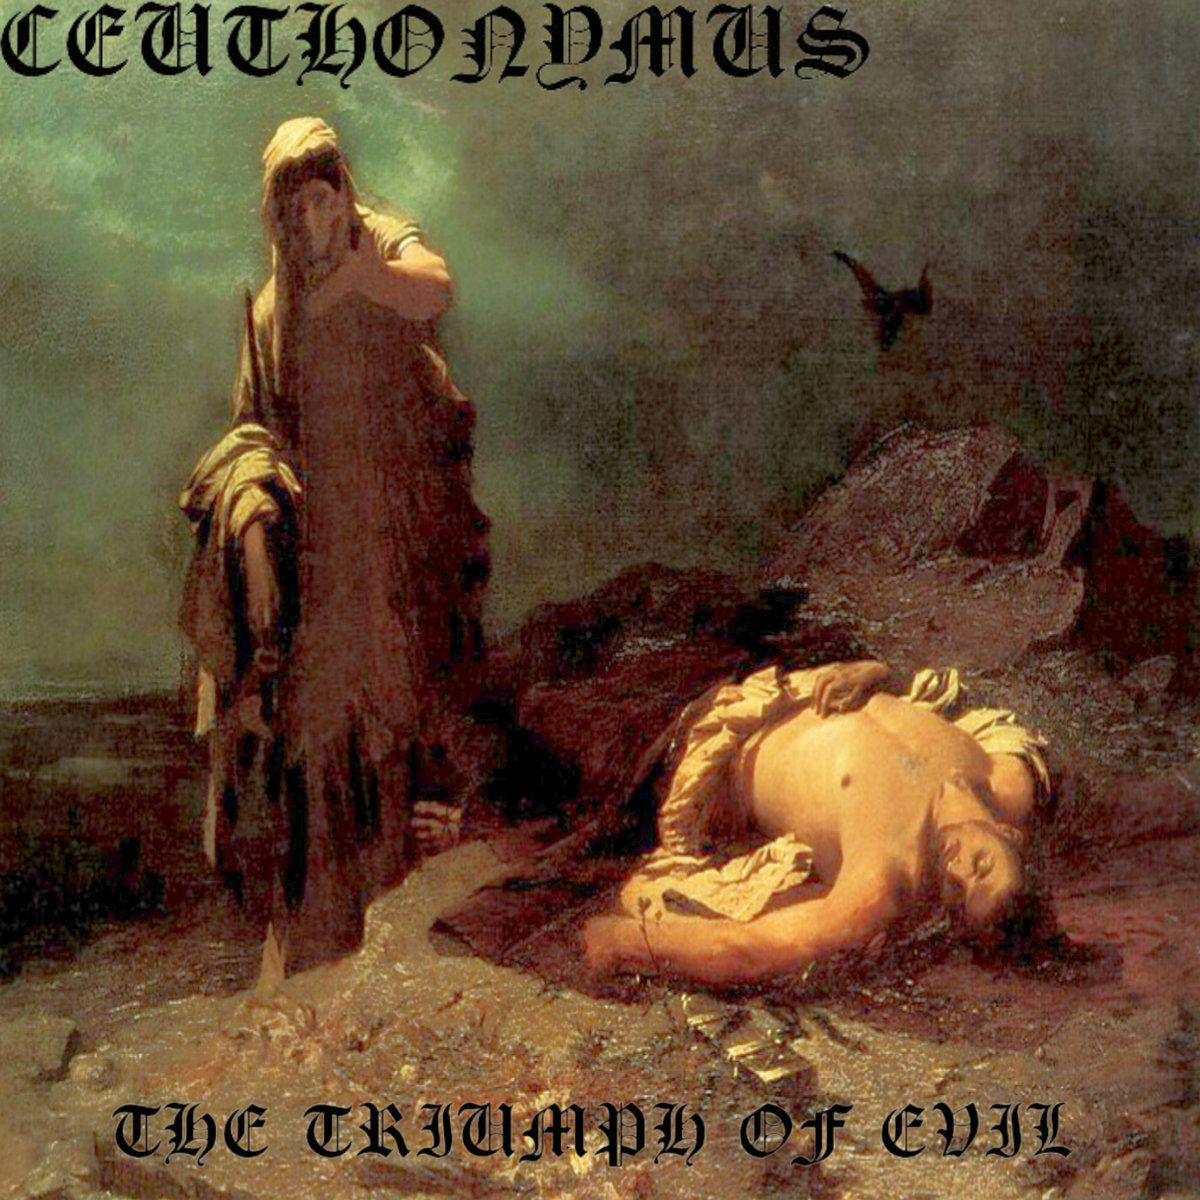 Ceuthonymus - The Triumph of Evil